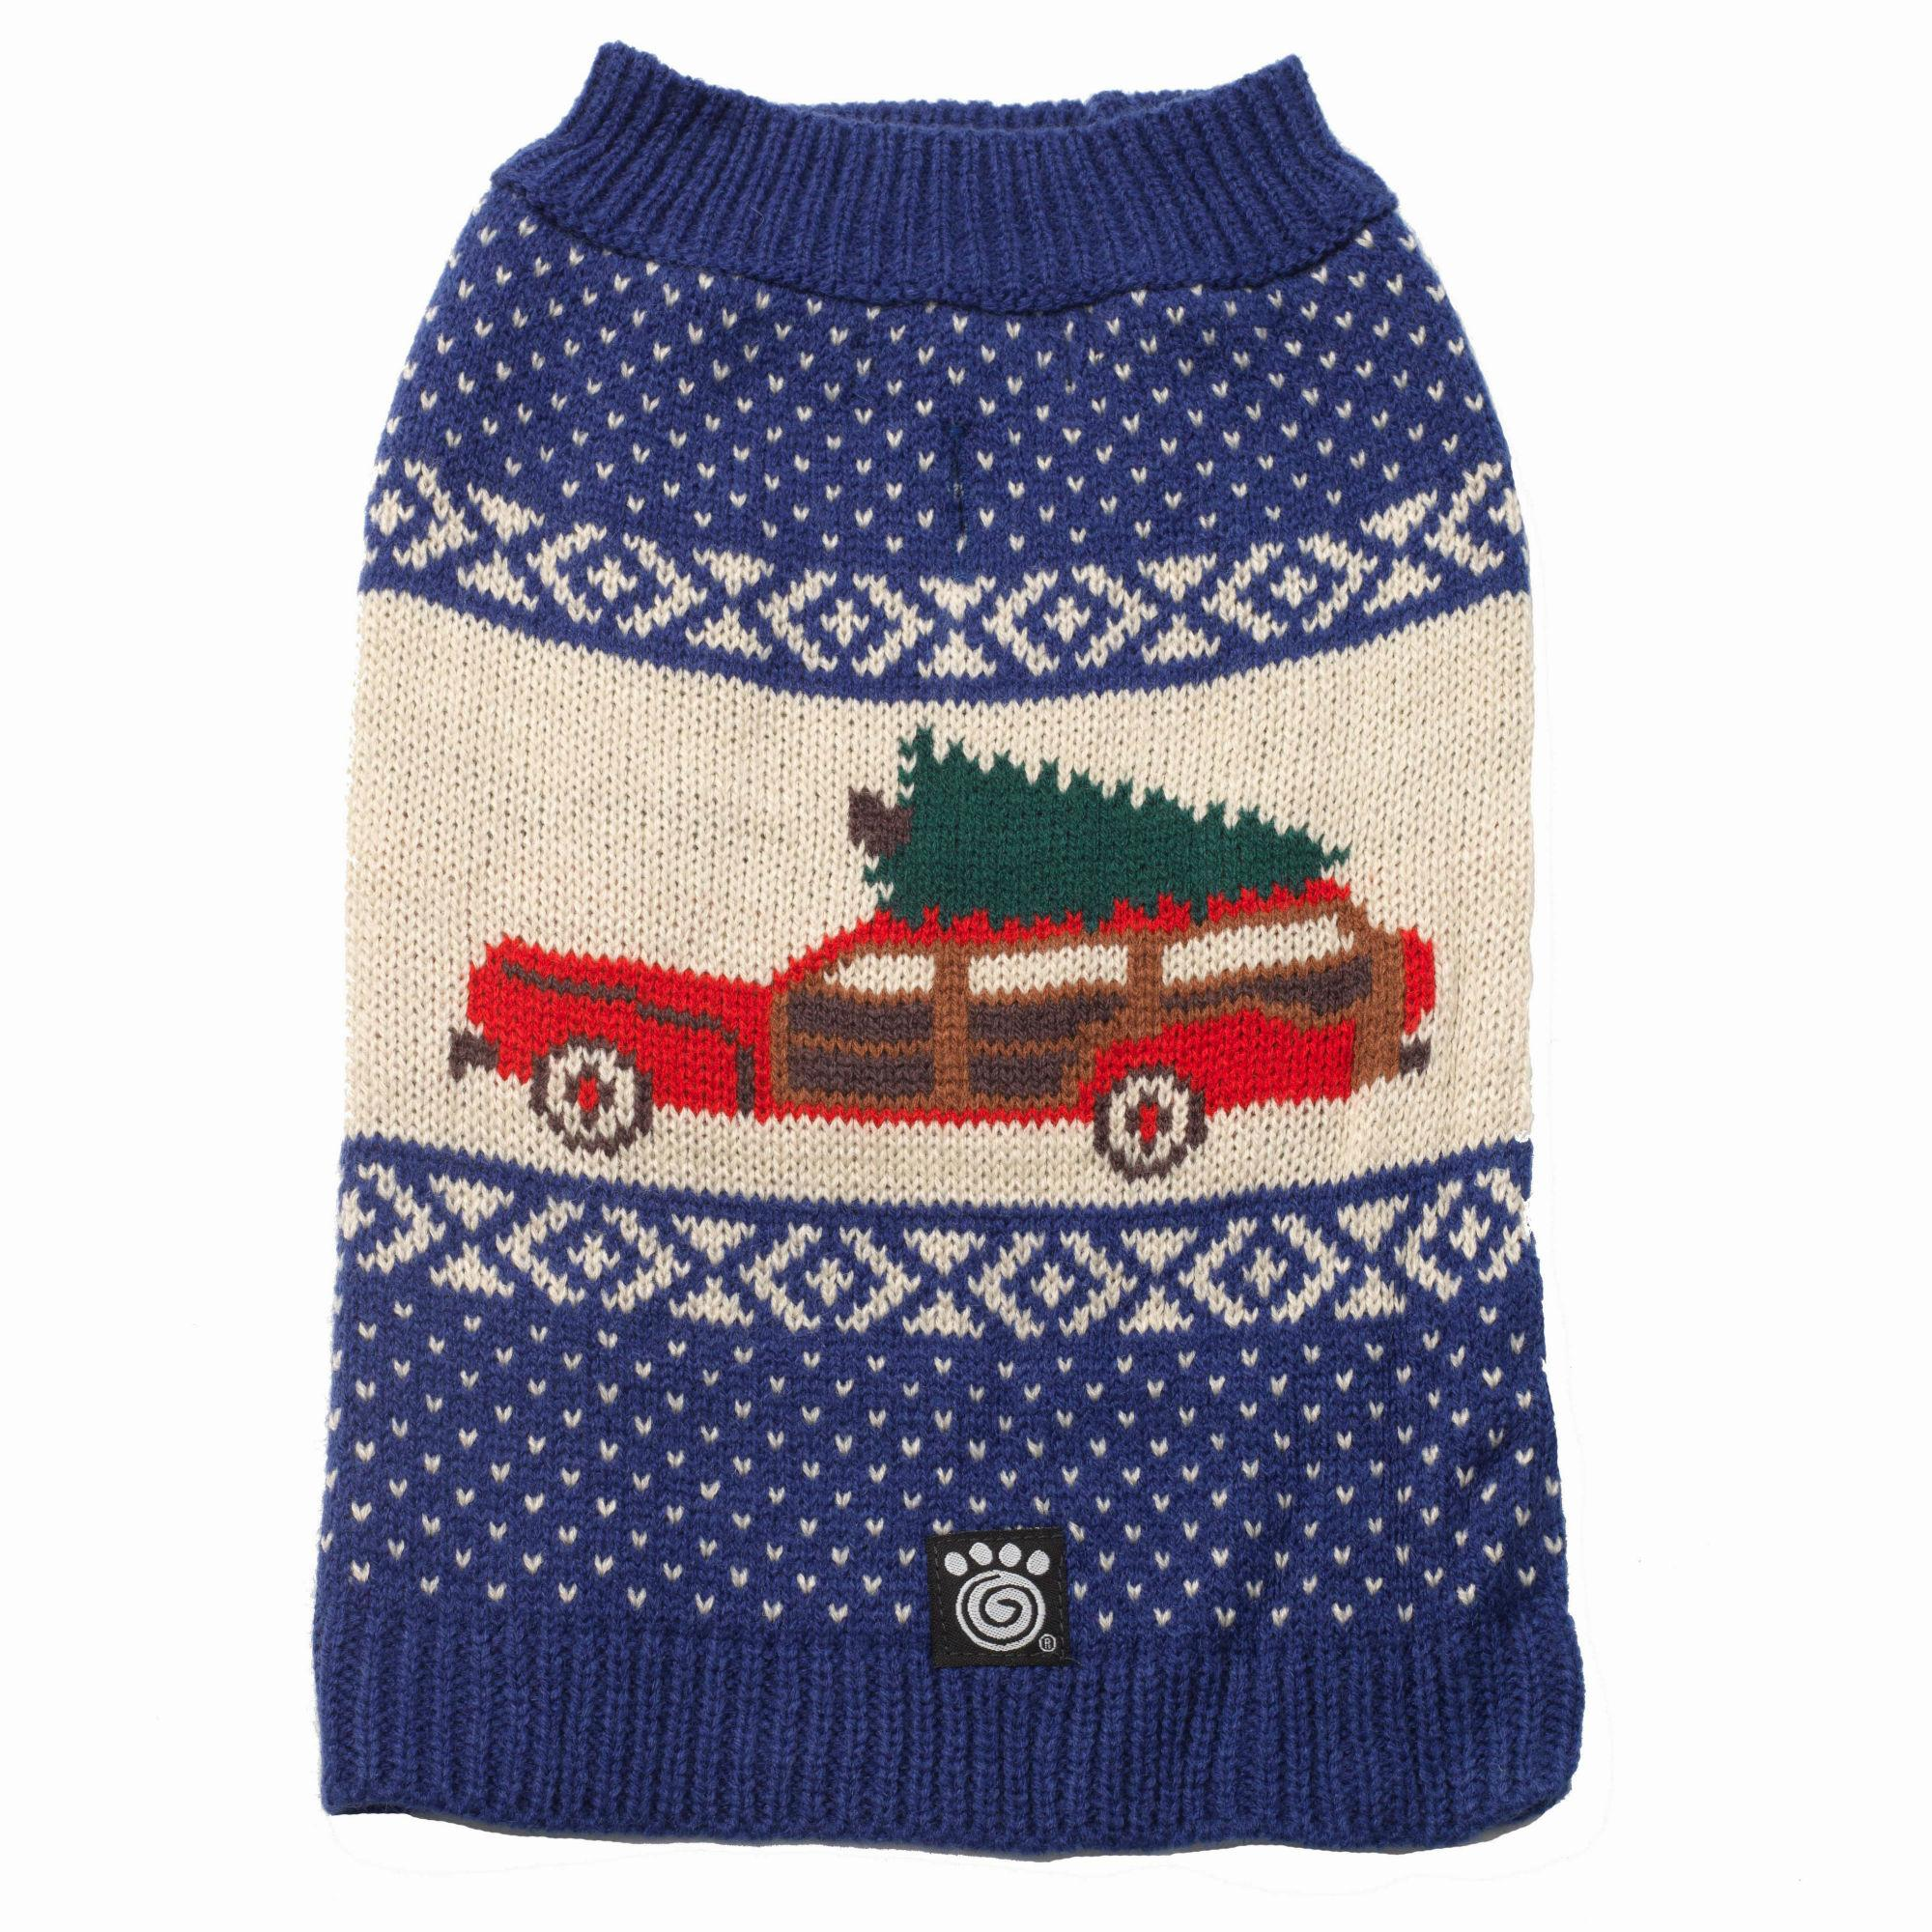 Clark's Wagon & Tree Sweater - Blue Multi